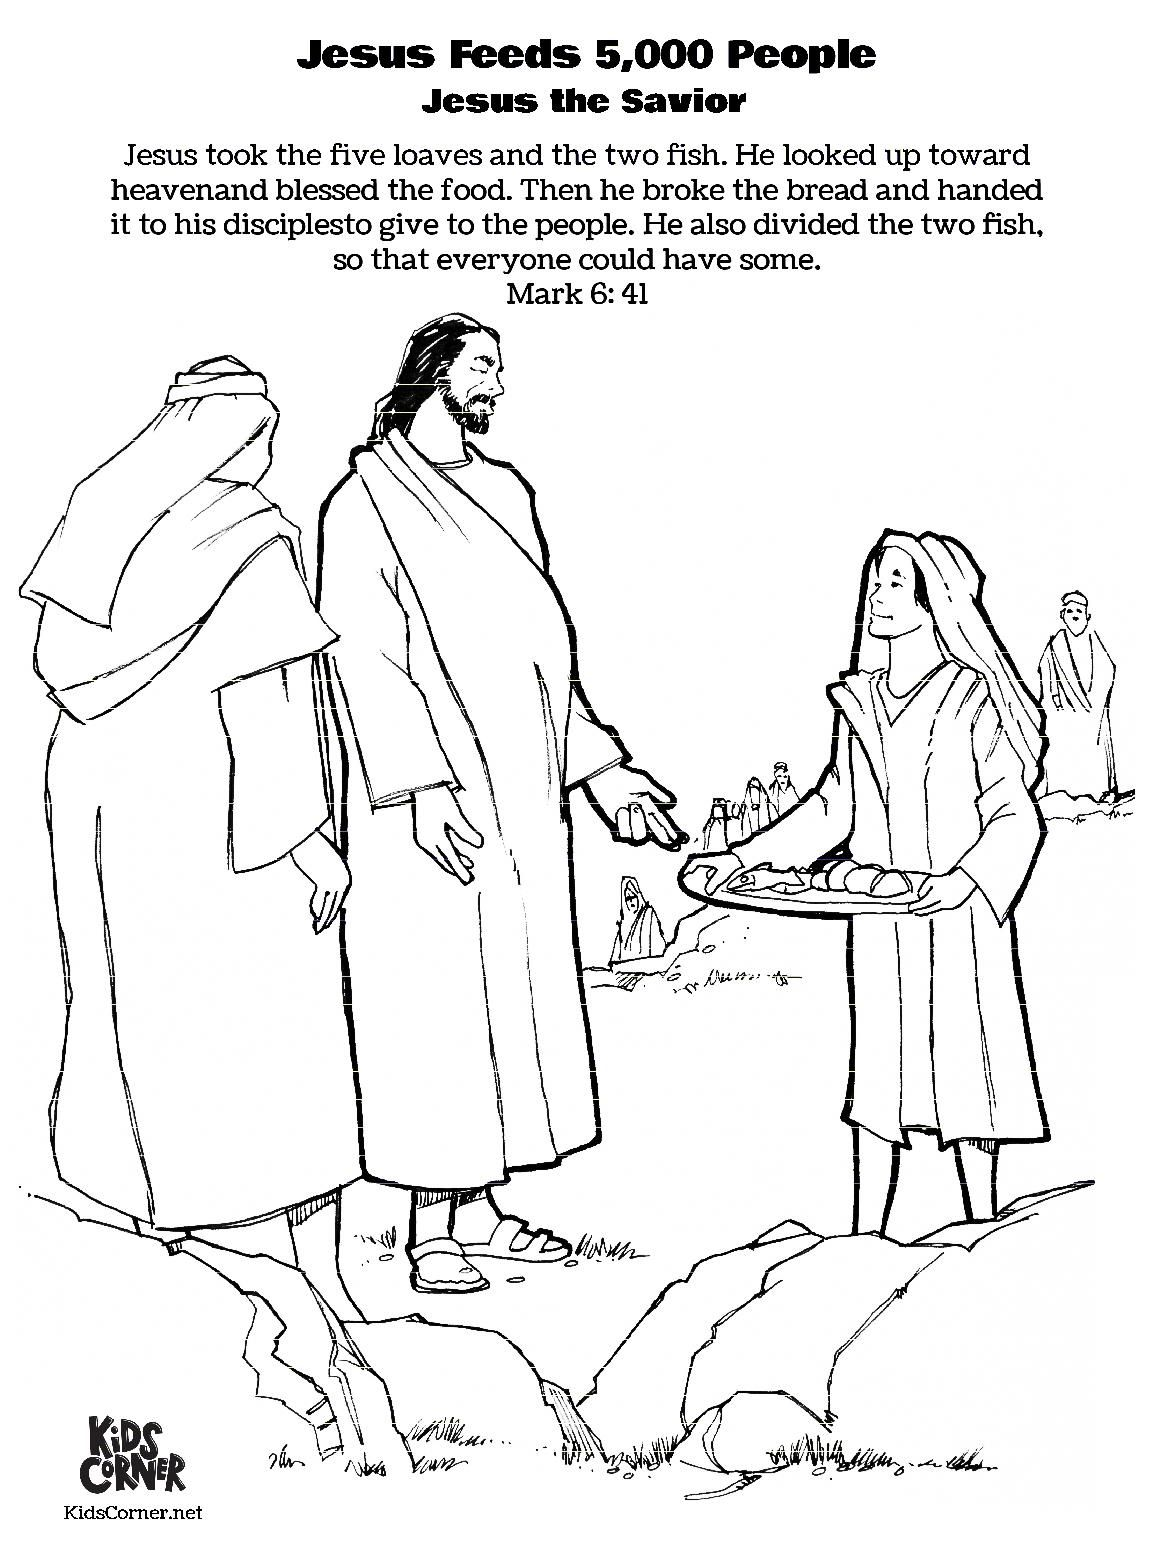 This free coloring page is part of our Jesus the Savior